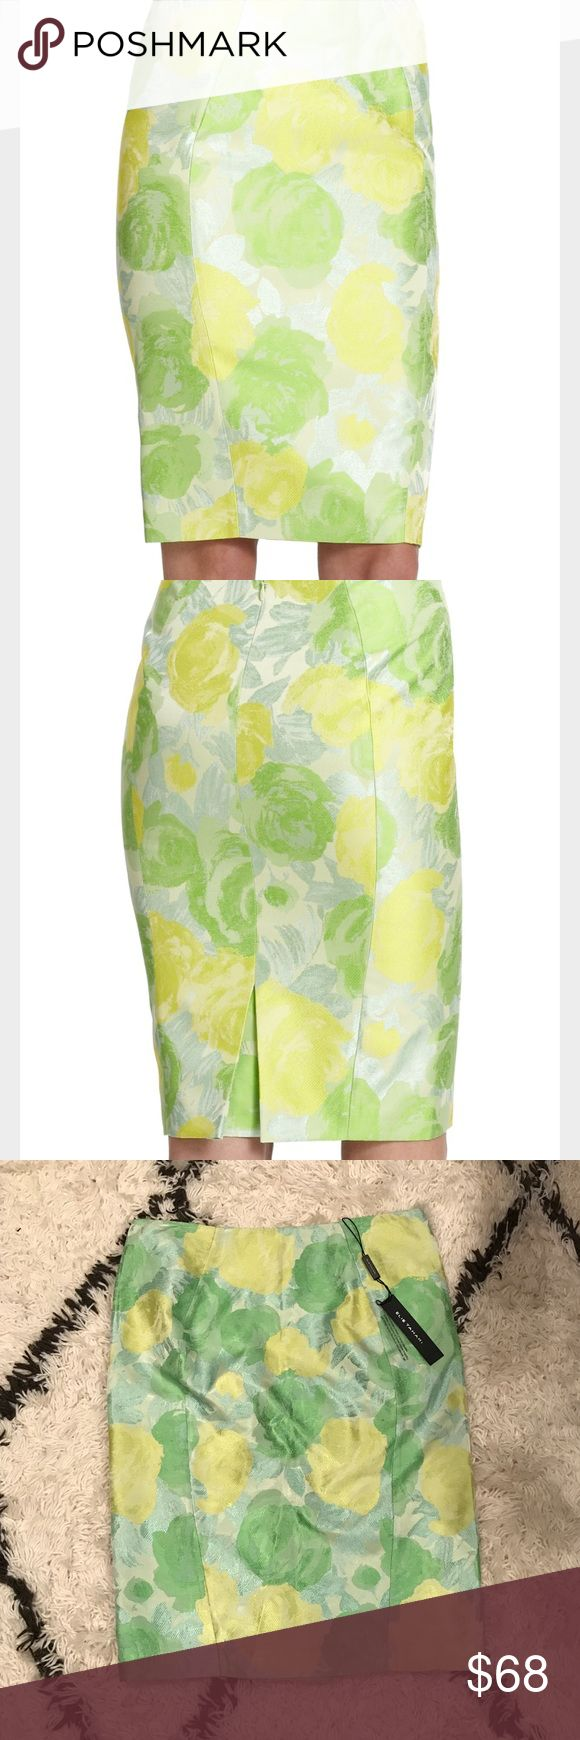 Elie Tahari Penelope Green Jacquard Floral Skirt Brand new with tags. Great for spring! 🌷 Elie Tahari Skirts Pencil